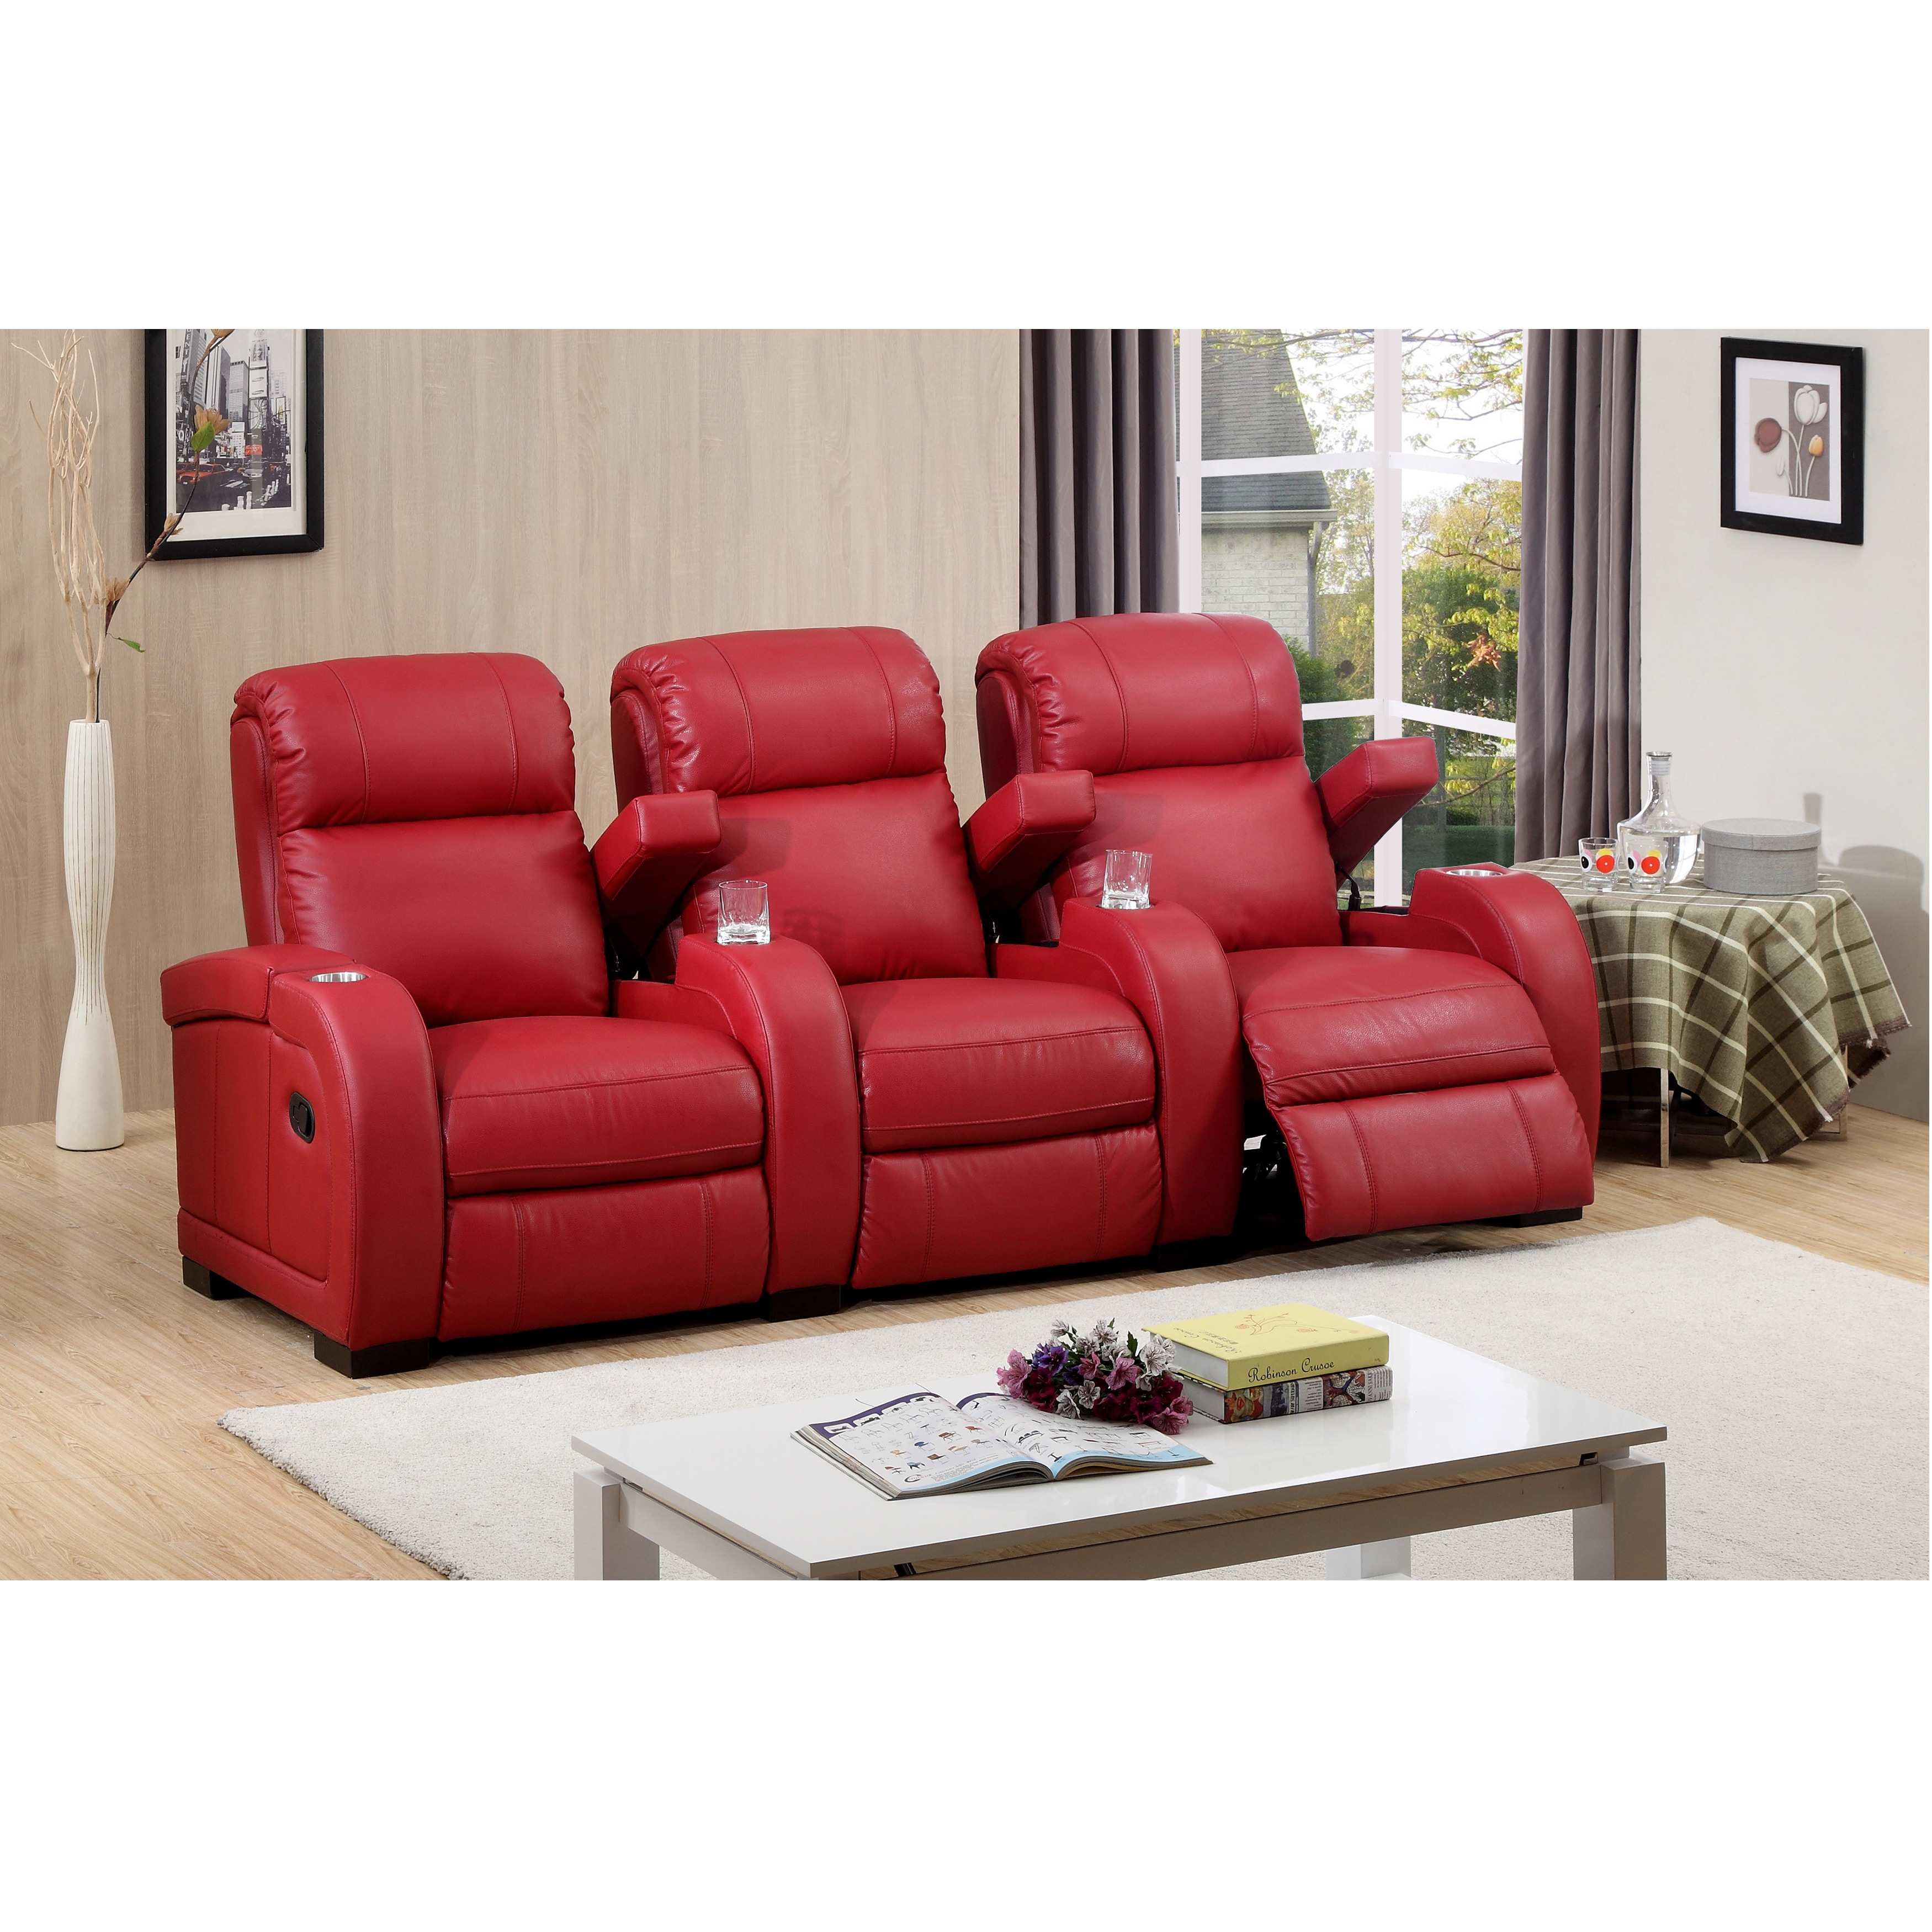 Sensational Hugo Three Seat Red Top Grain Leather Recliner Home Theater Seating Set Squirreltailoven Fun Painted Chair Ideas Images Squirreltailovenorg